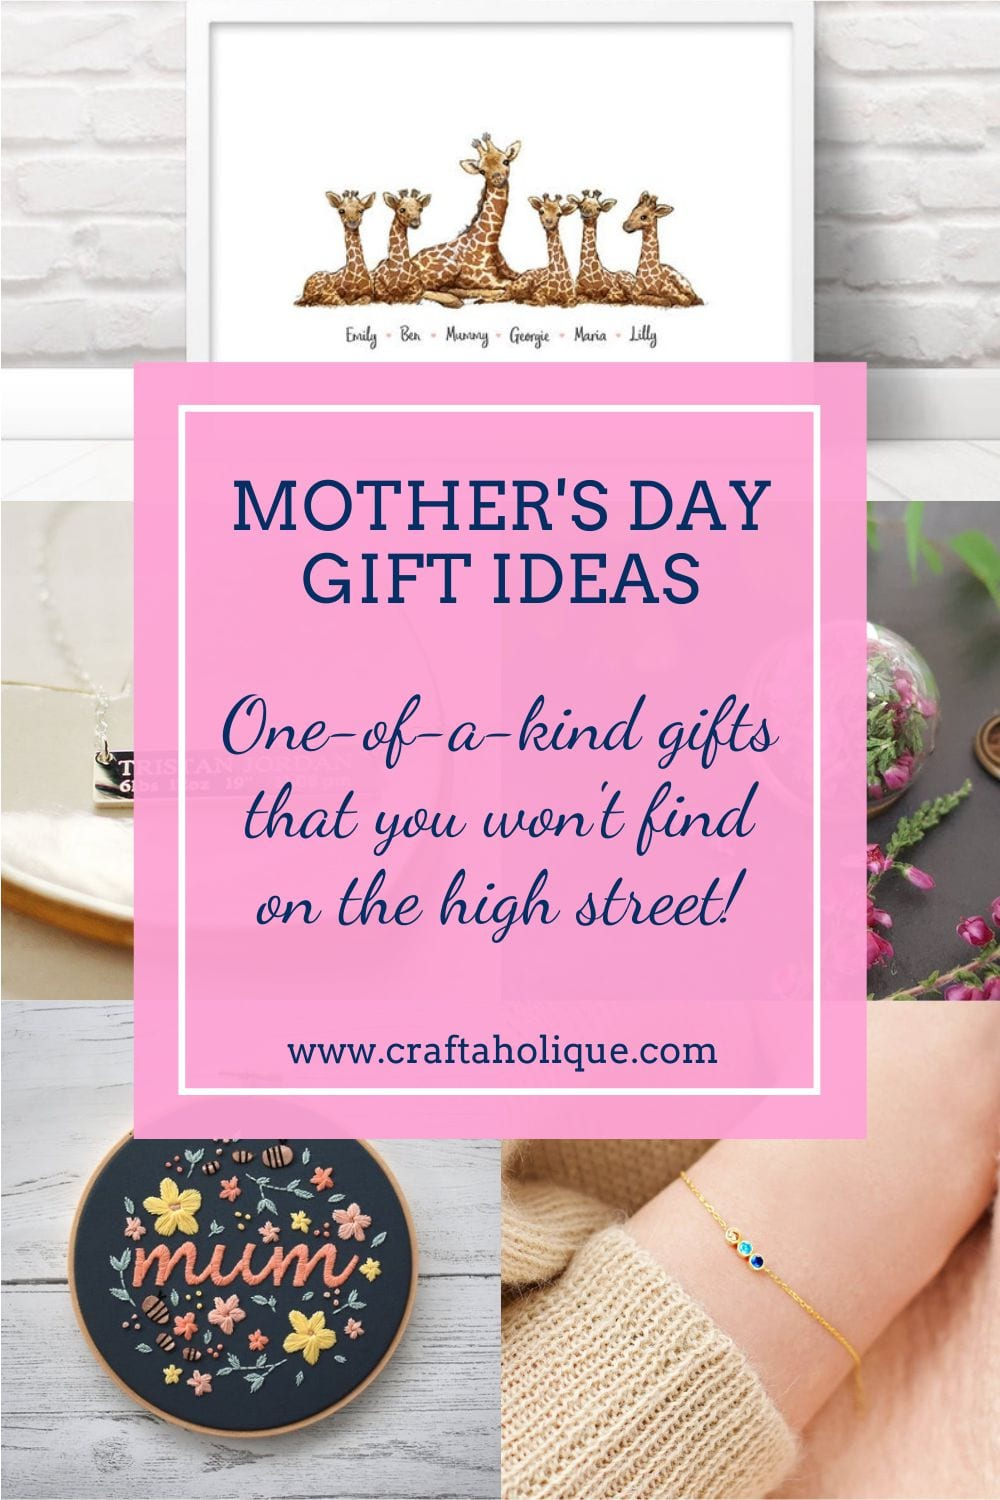 A selection of gorgeous Mother's Day gift ideas from talented creators on Etsy. You're sure to find a gift that special lady in your life will love!